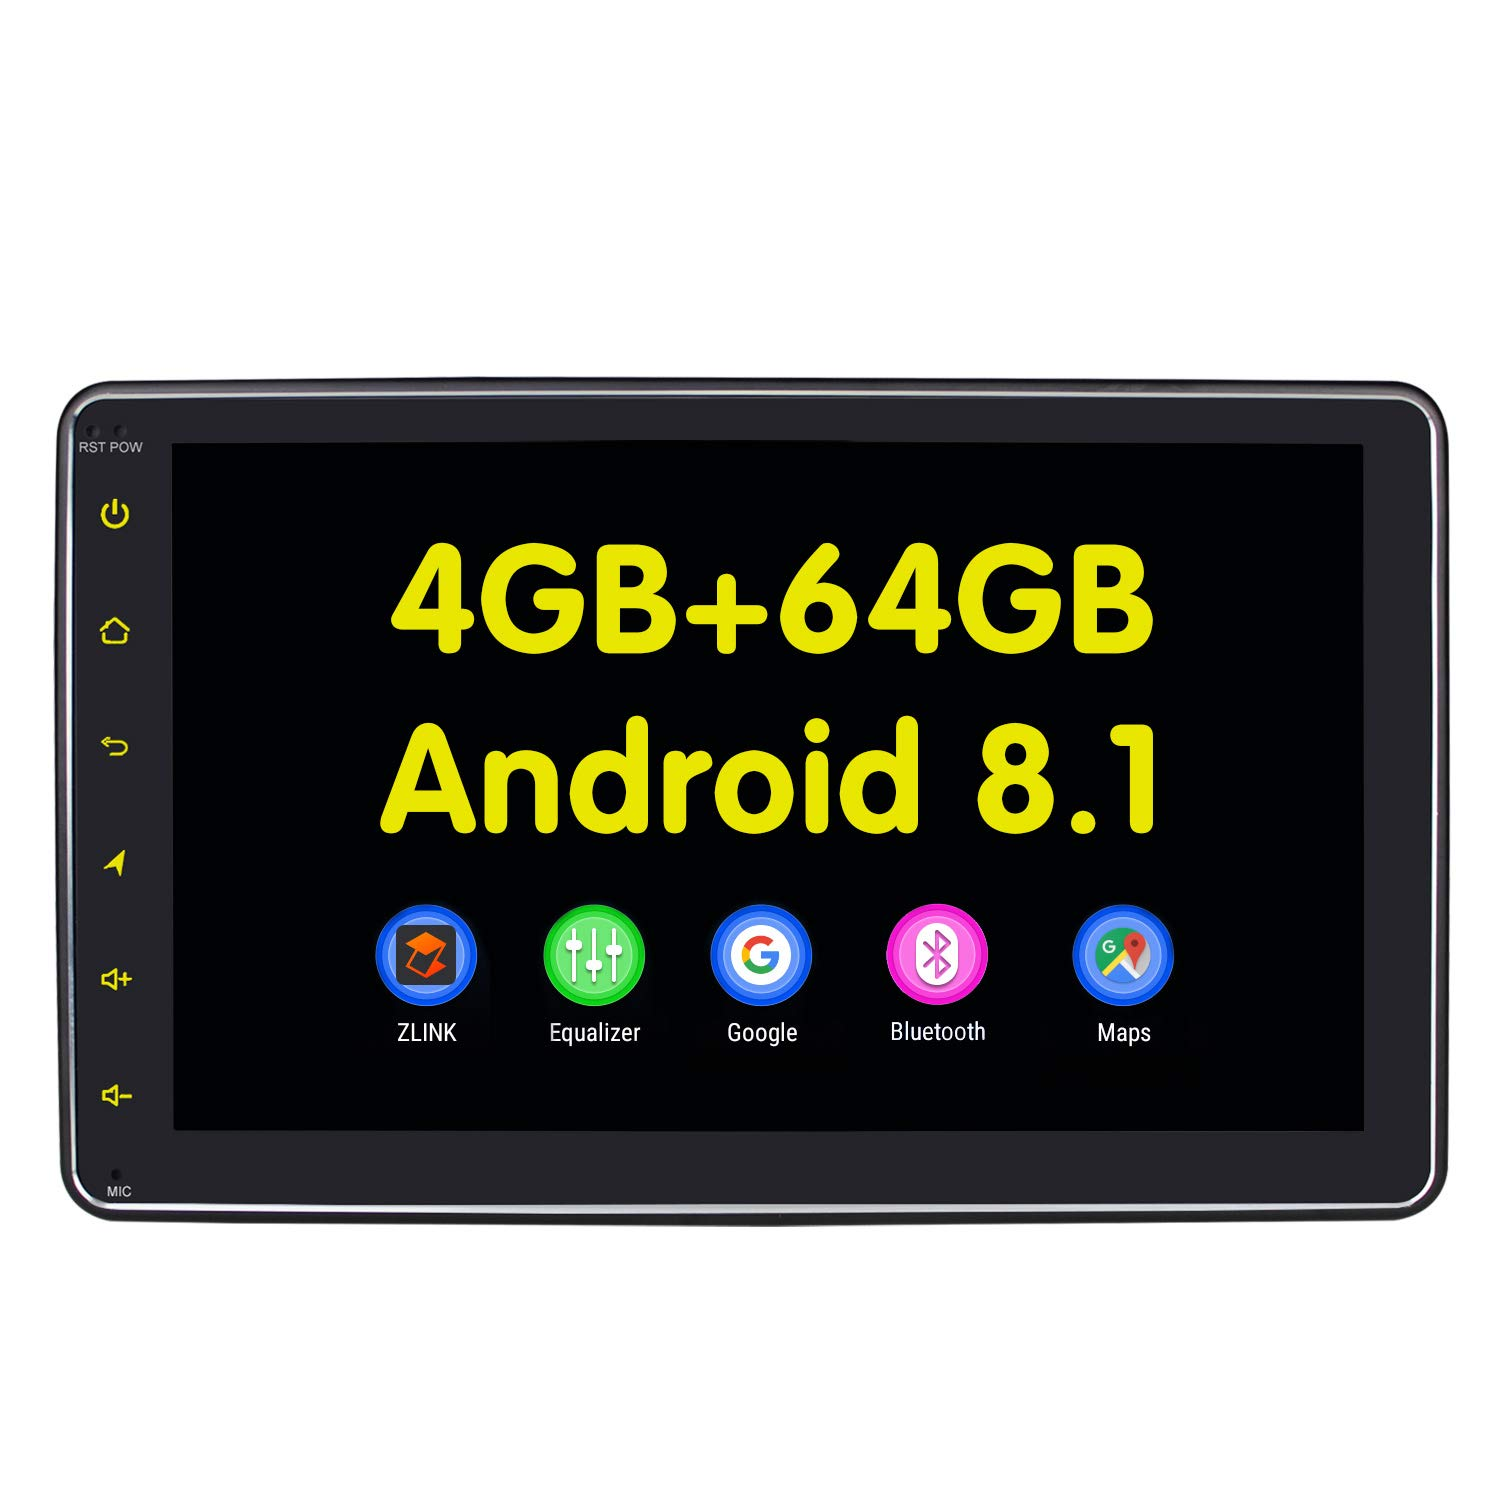 JOYFORWA Car Stereo Single Din 8 inch Car Radio Android 8.1 GPS Navigation Detachable Screen In-dash Headunit 4GB RAM 64GB ROM Support Android Auto Backup Camera OBD2 DVR USB/SD TPMS